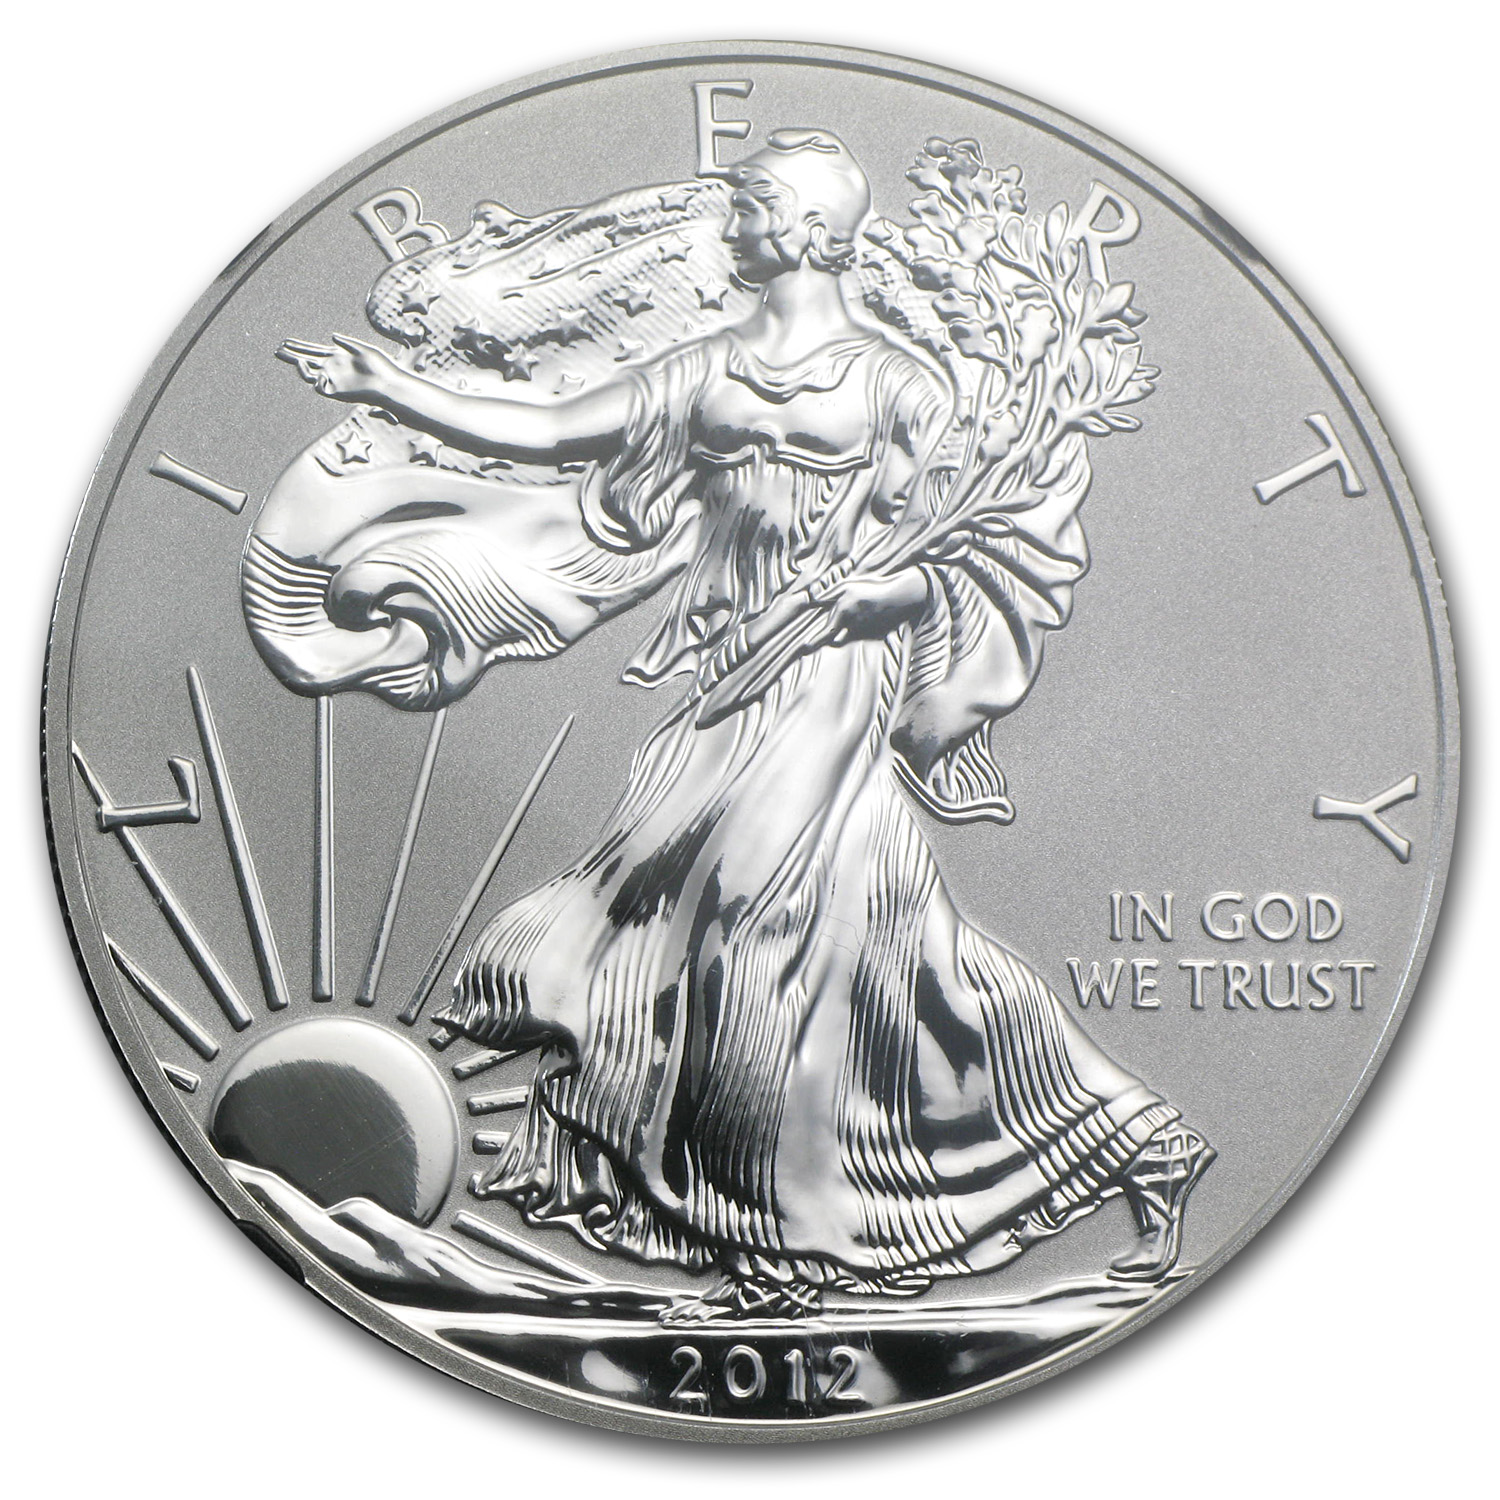 2012-S Rev Proof Silver American Eagle PF70 (Retro Black Insert)